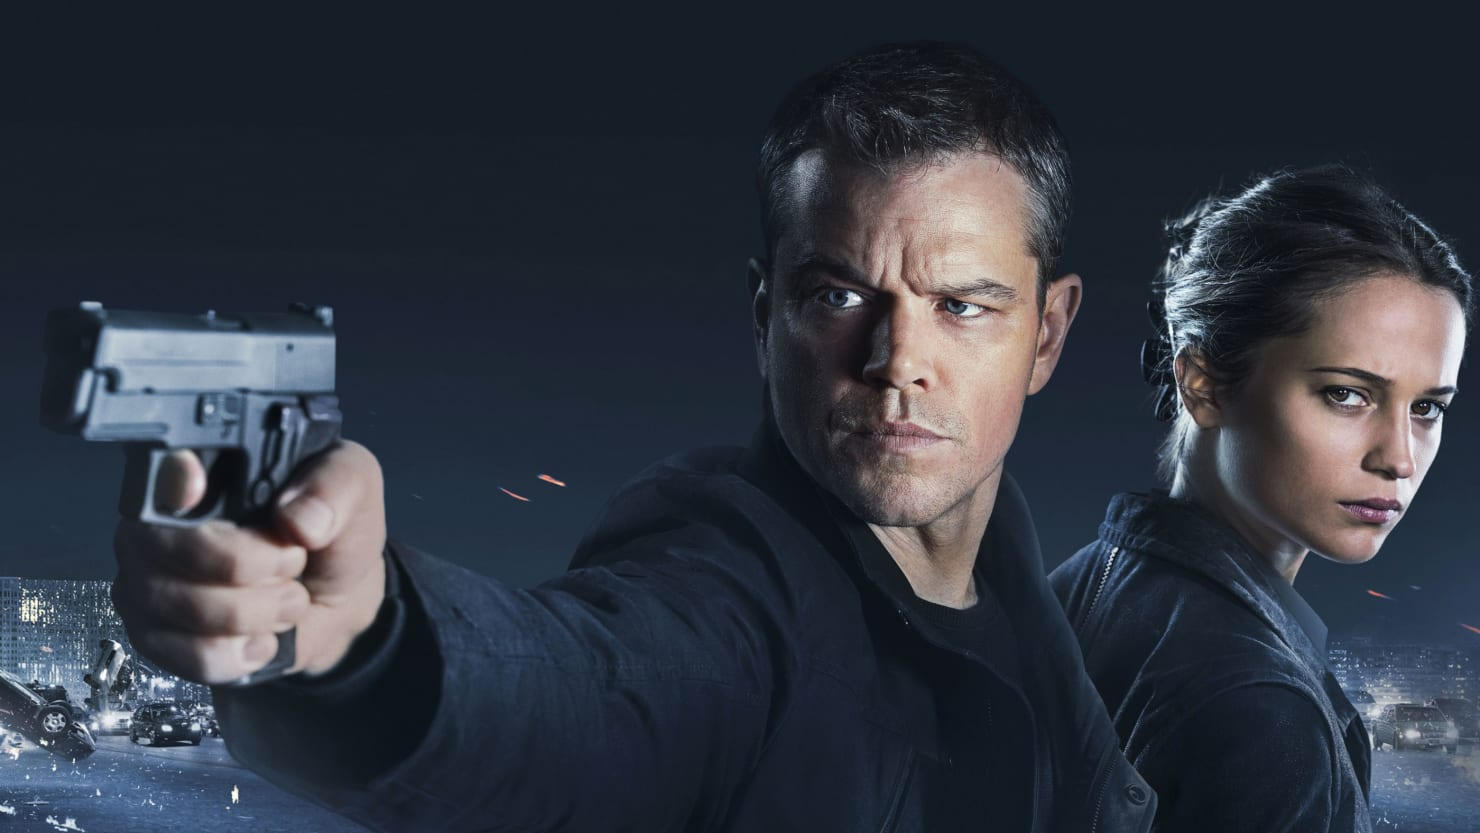 Movies about Bourne - a franchise about the CIA super agent